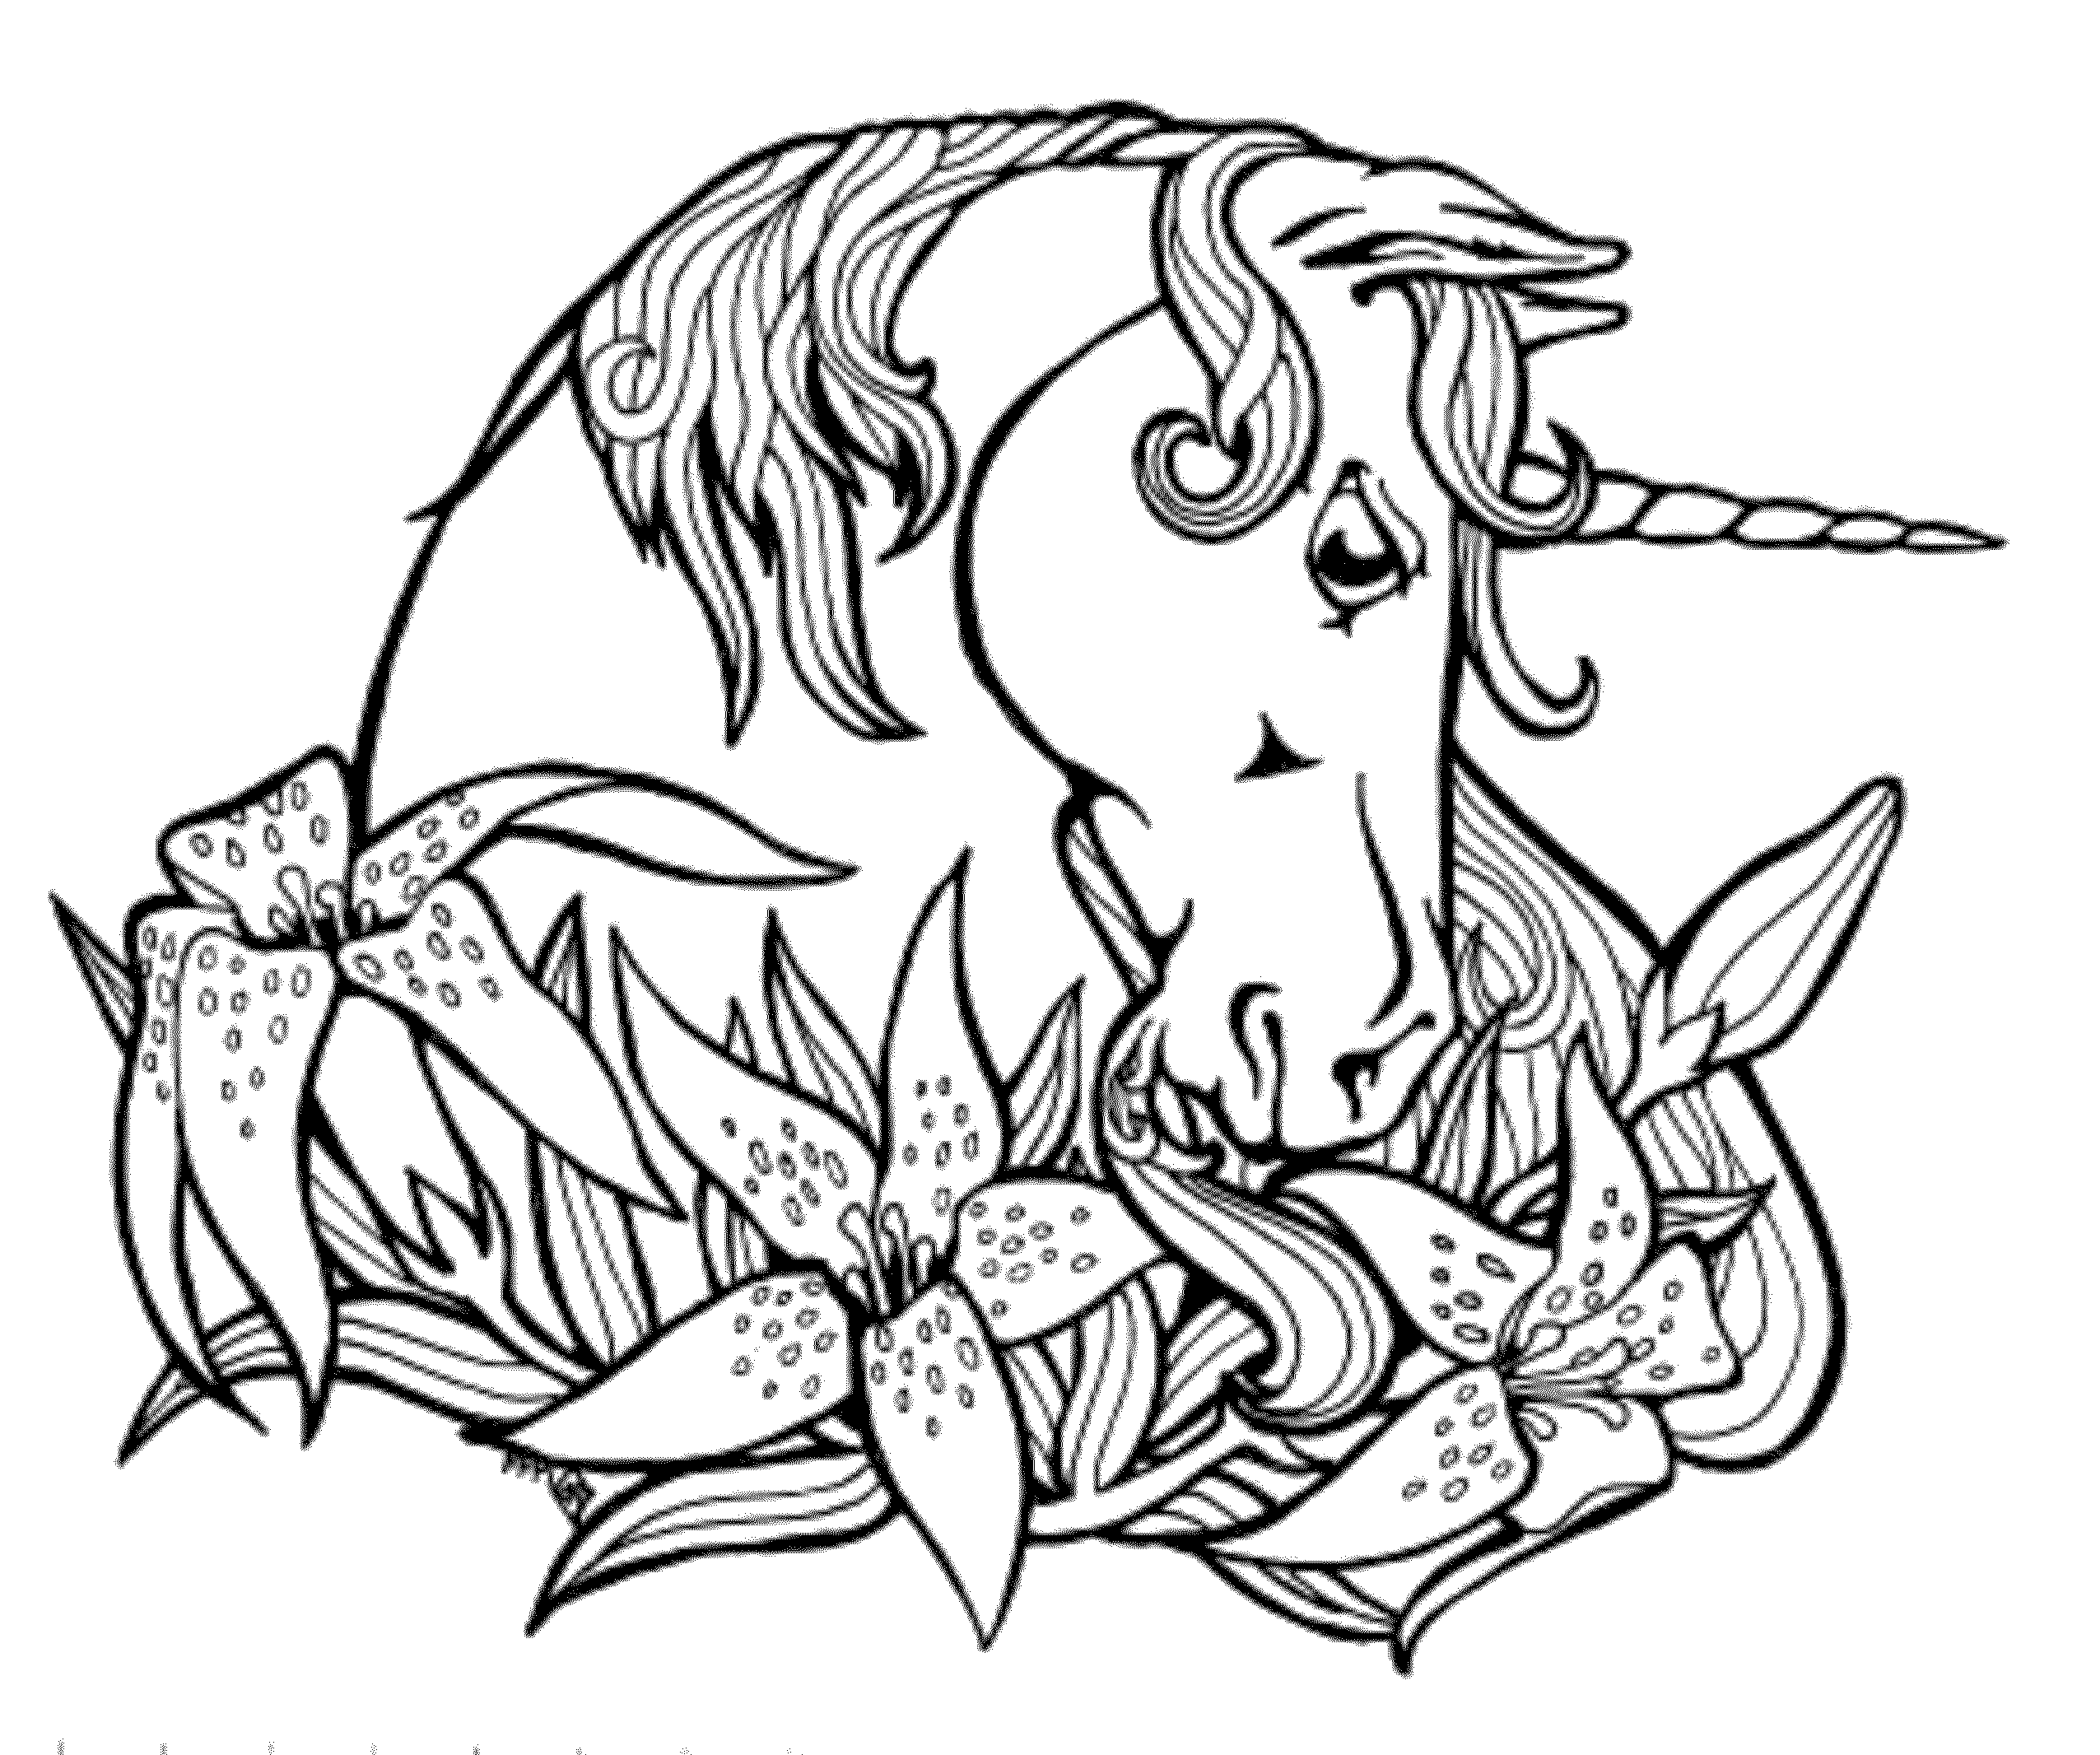 full size coloring sheets free full size coloring pages at getcoloringscom free coloring sheets size full